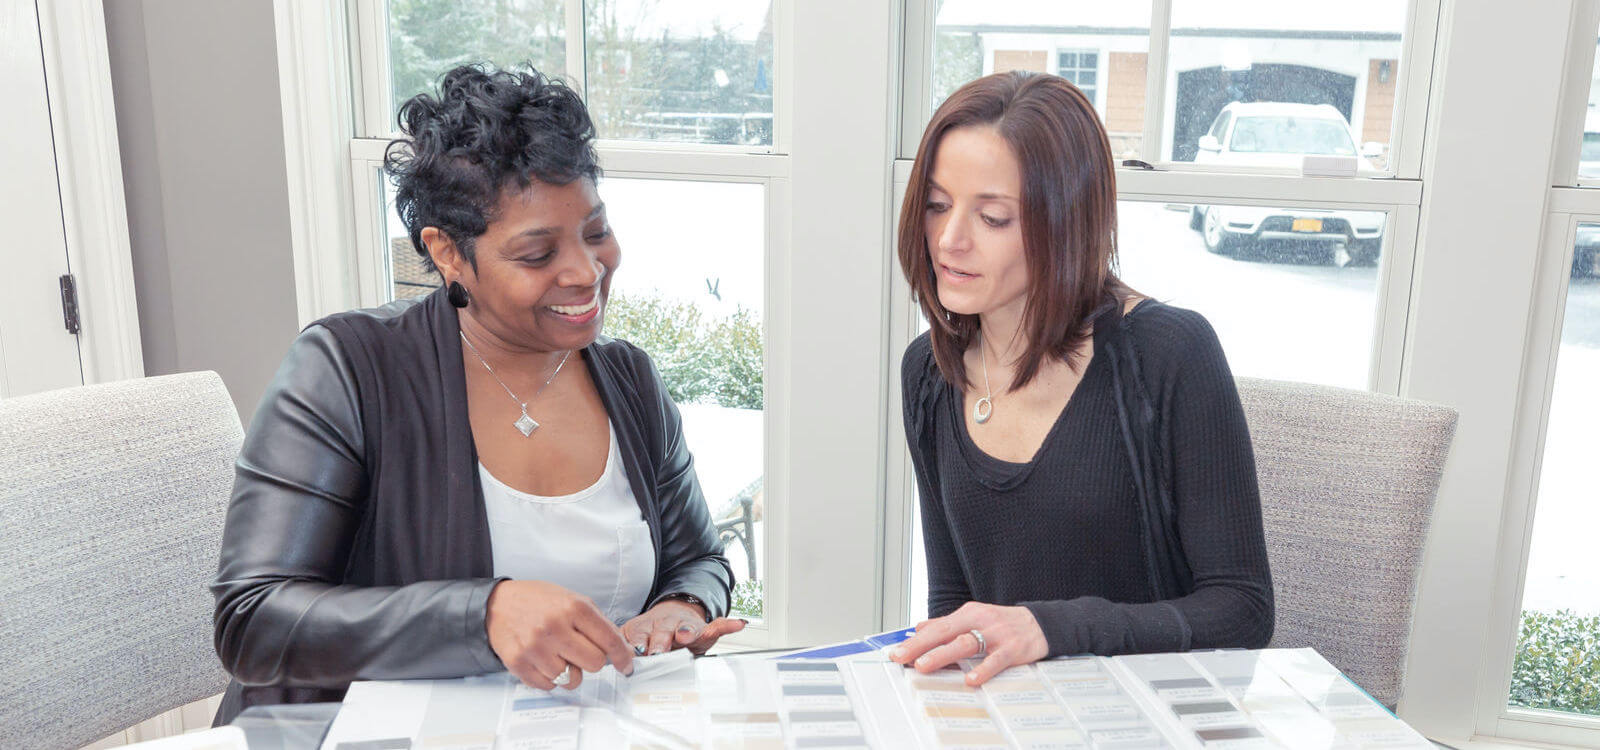 A Shop-at-Home design consultant shows samples to a customer at a dining room table in a modern home.